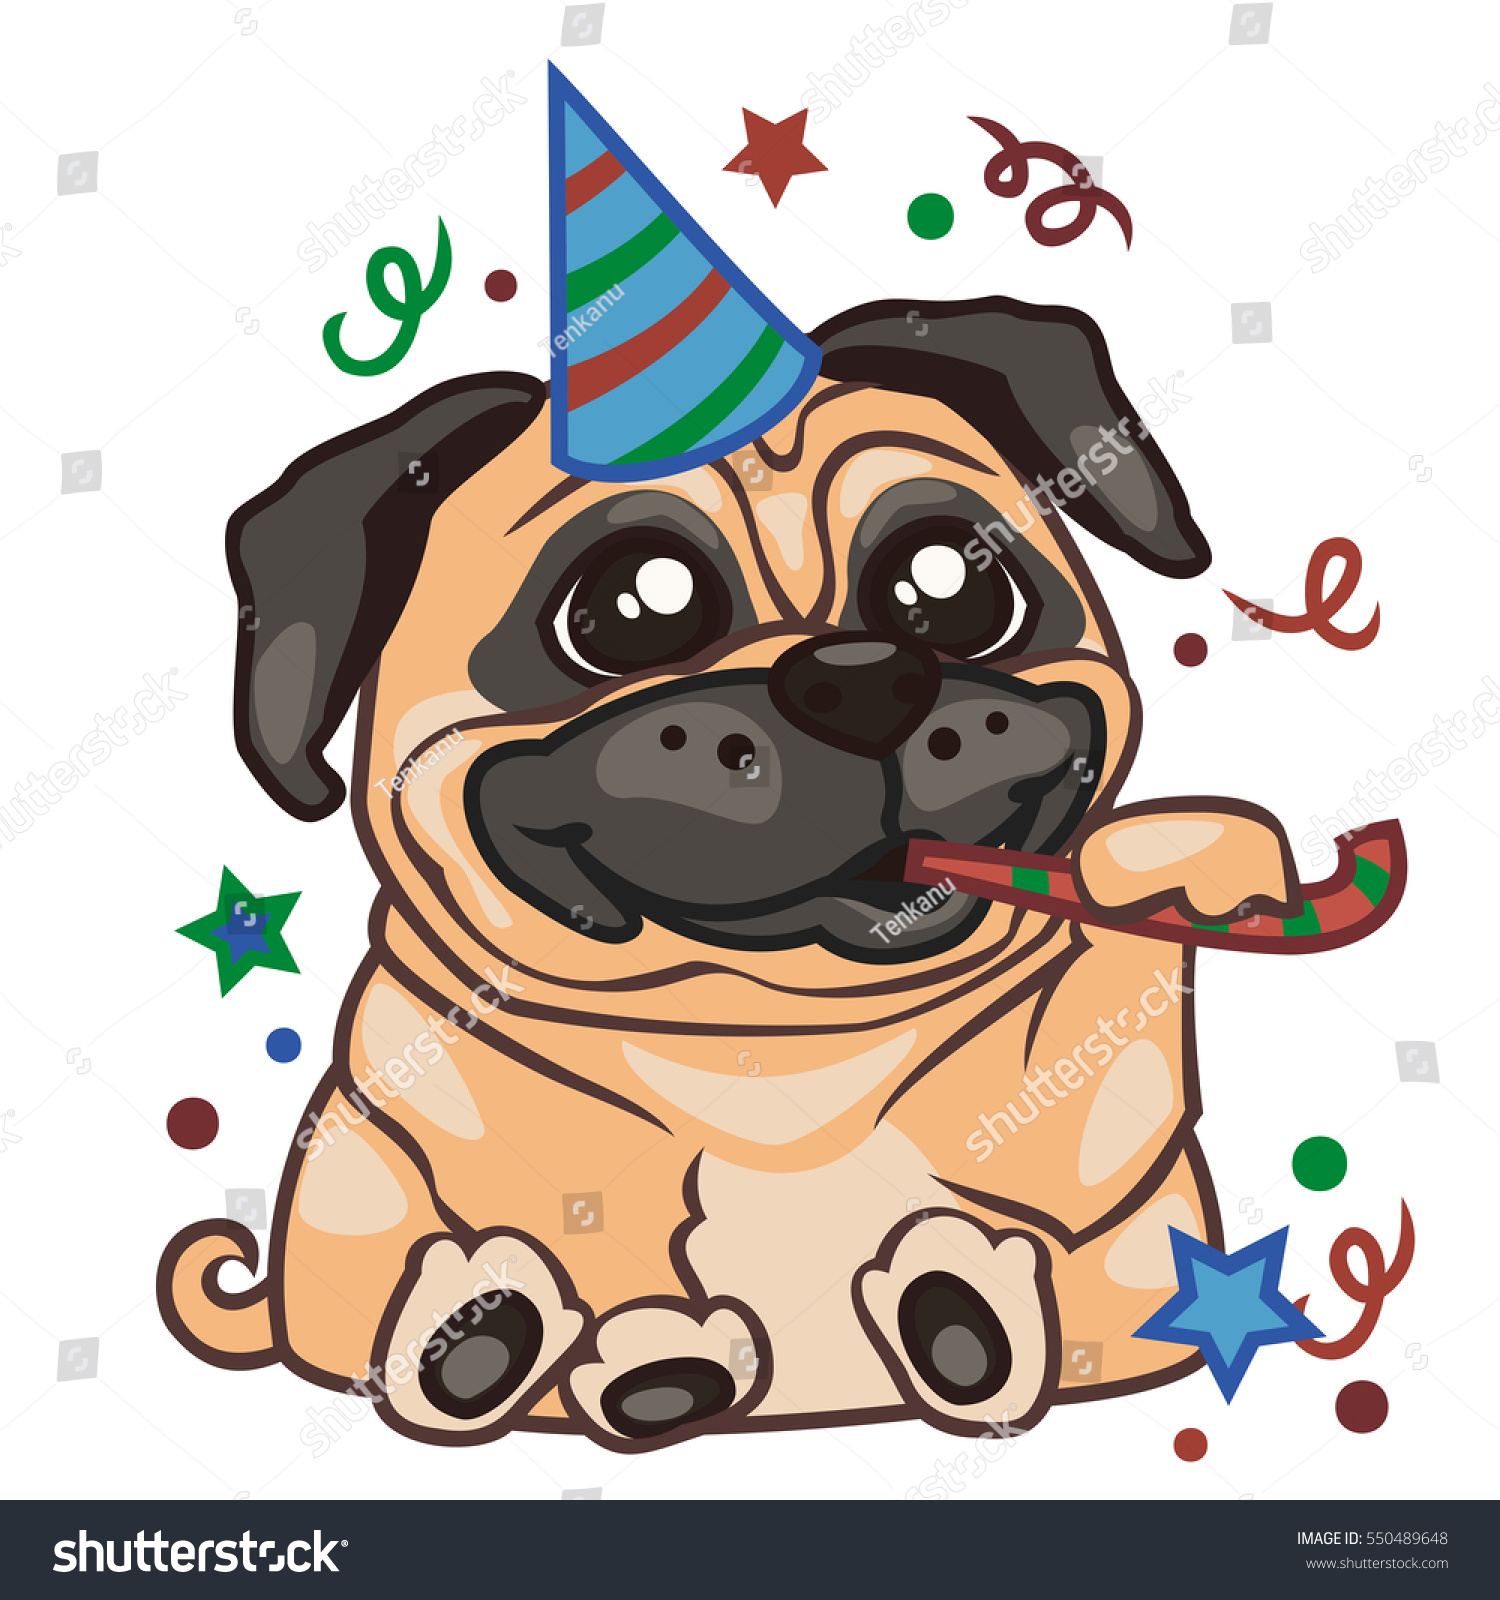 Sticker Pug Dog Illustration On Birthday Vector de stock (libre de ...